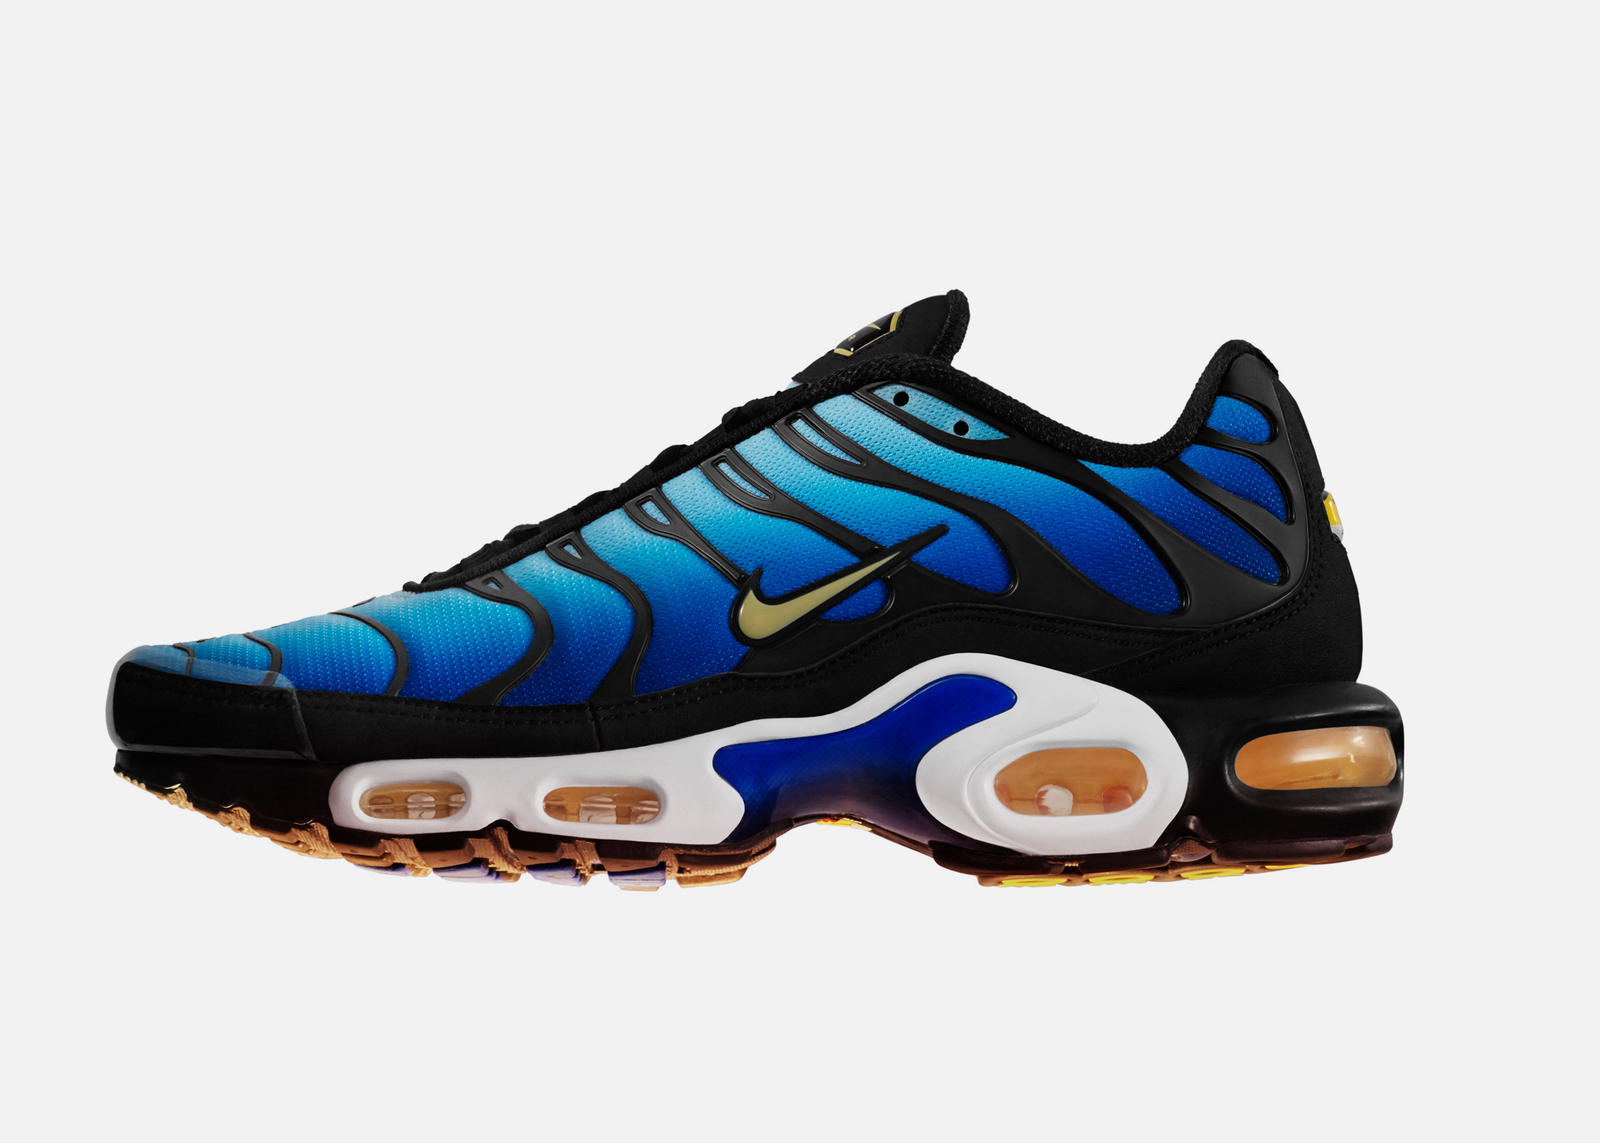 online retailer 9a6ed 22716 The Untold Story of the Nike Air Max Plus 20